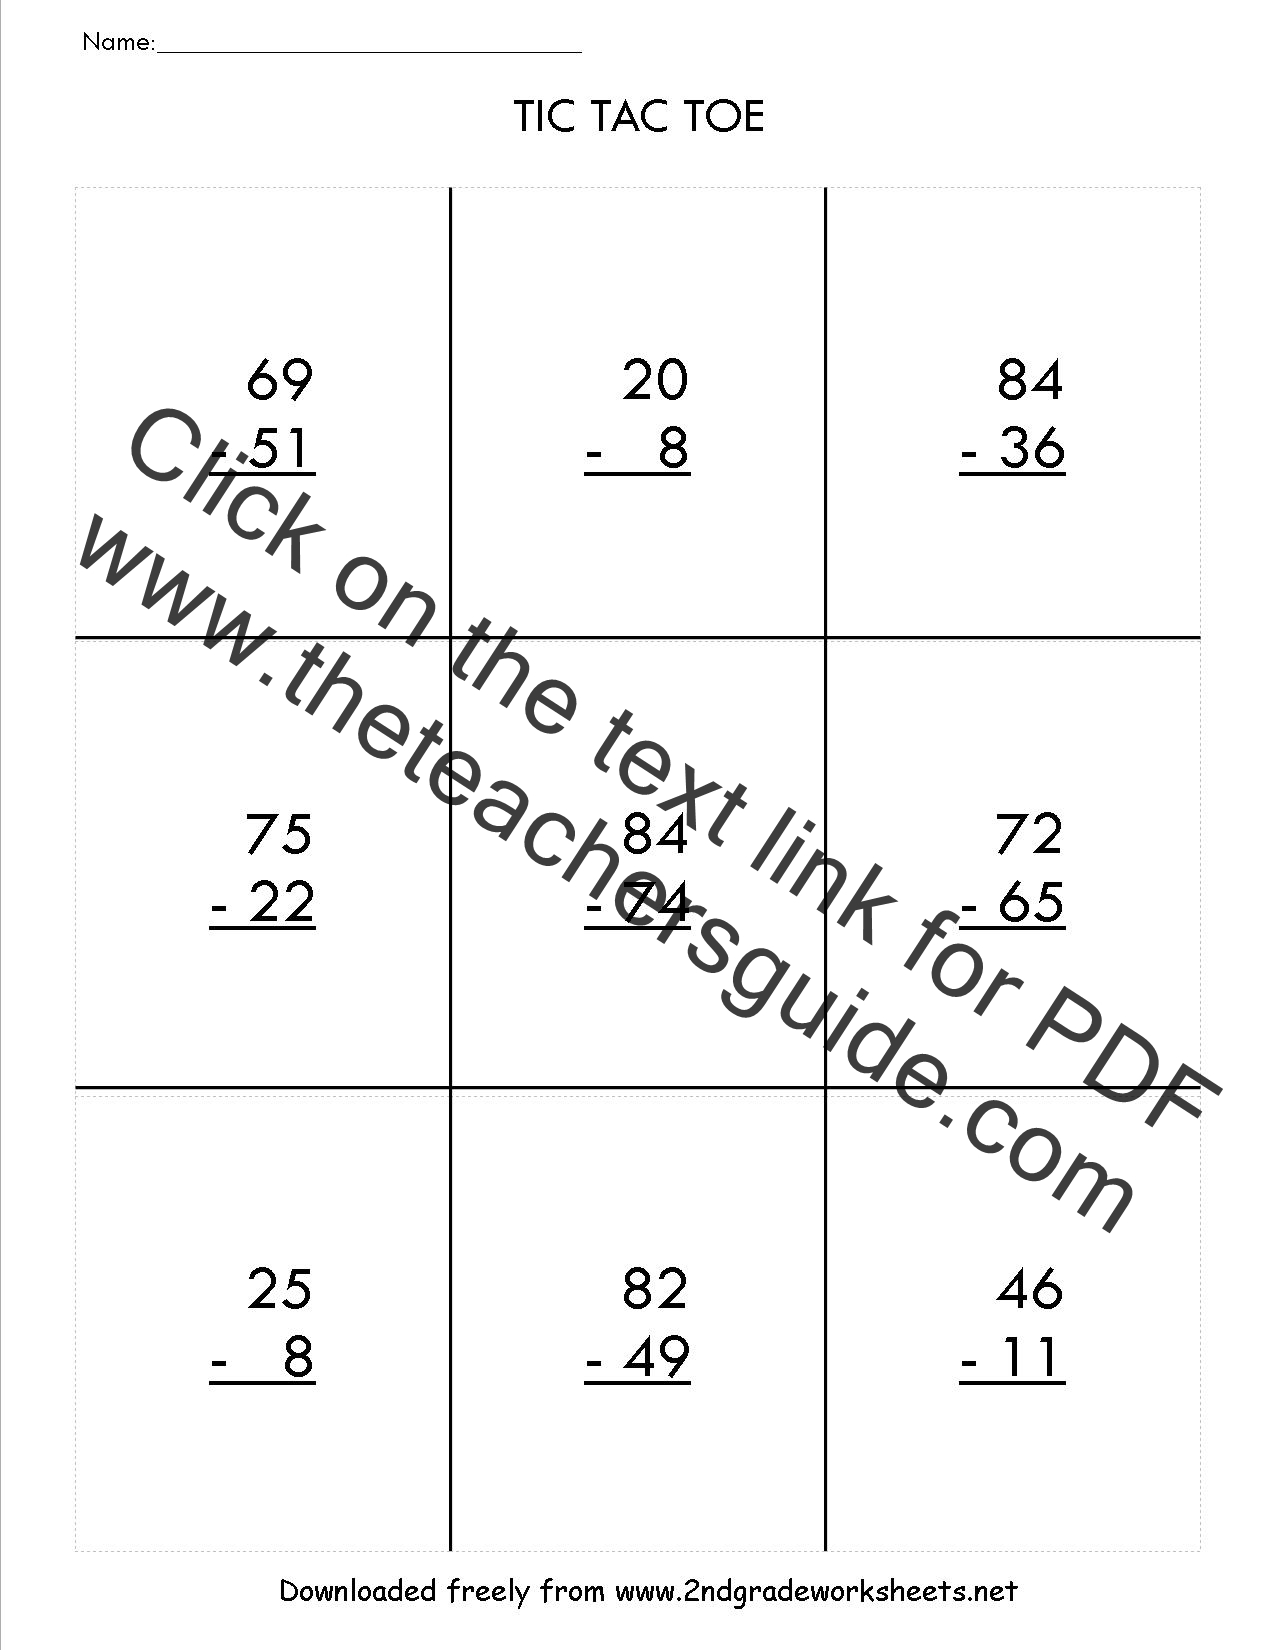 two digit subtraction worksheets two digit subtraction with regrouping tic tac toe